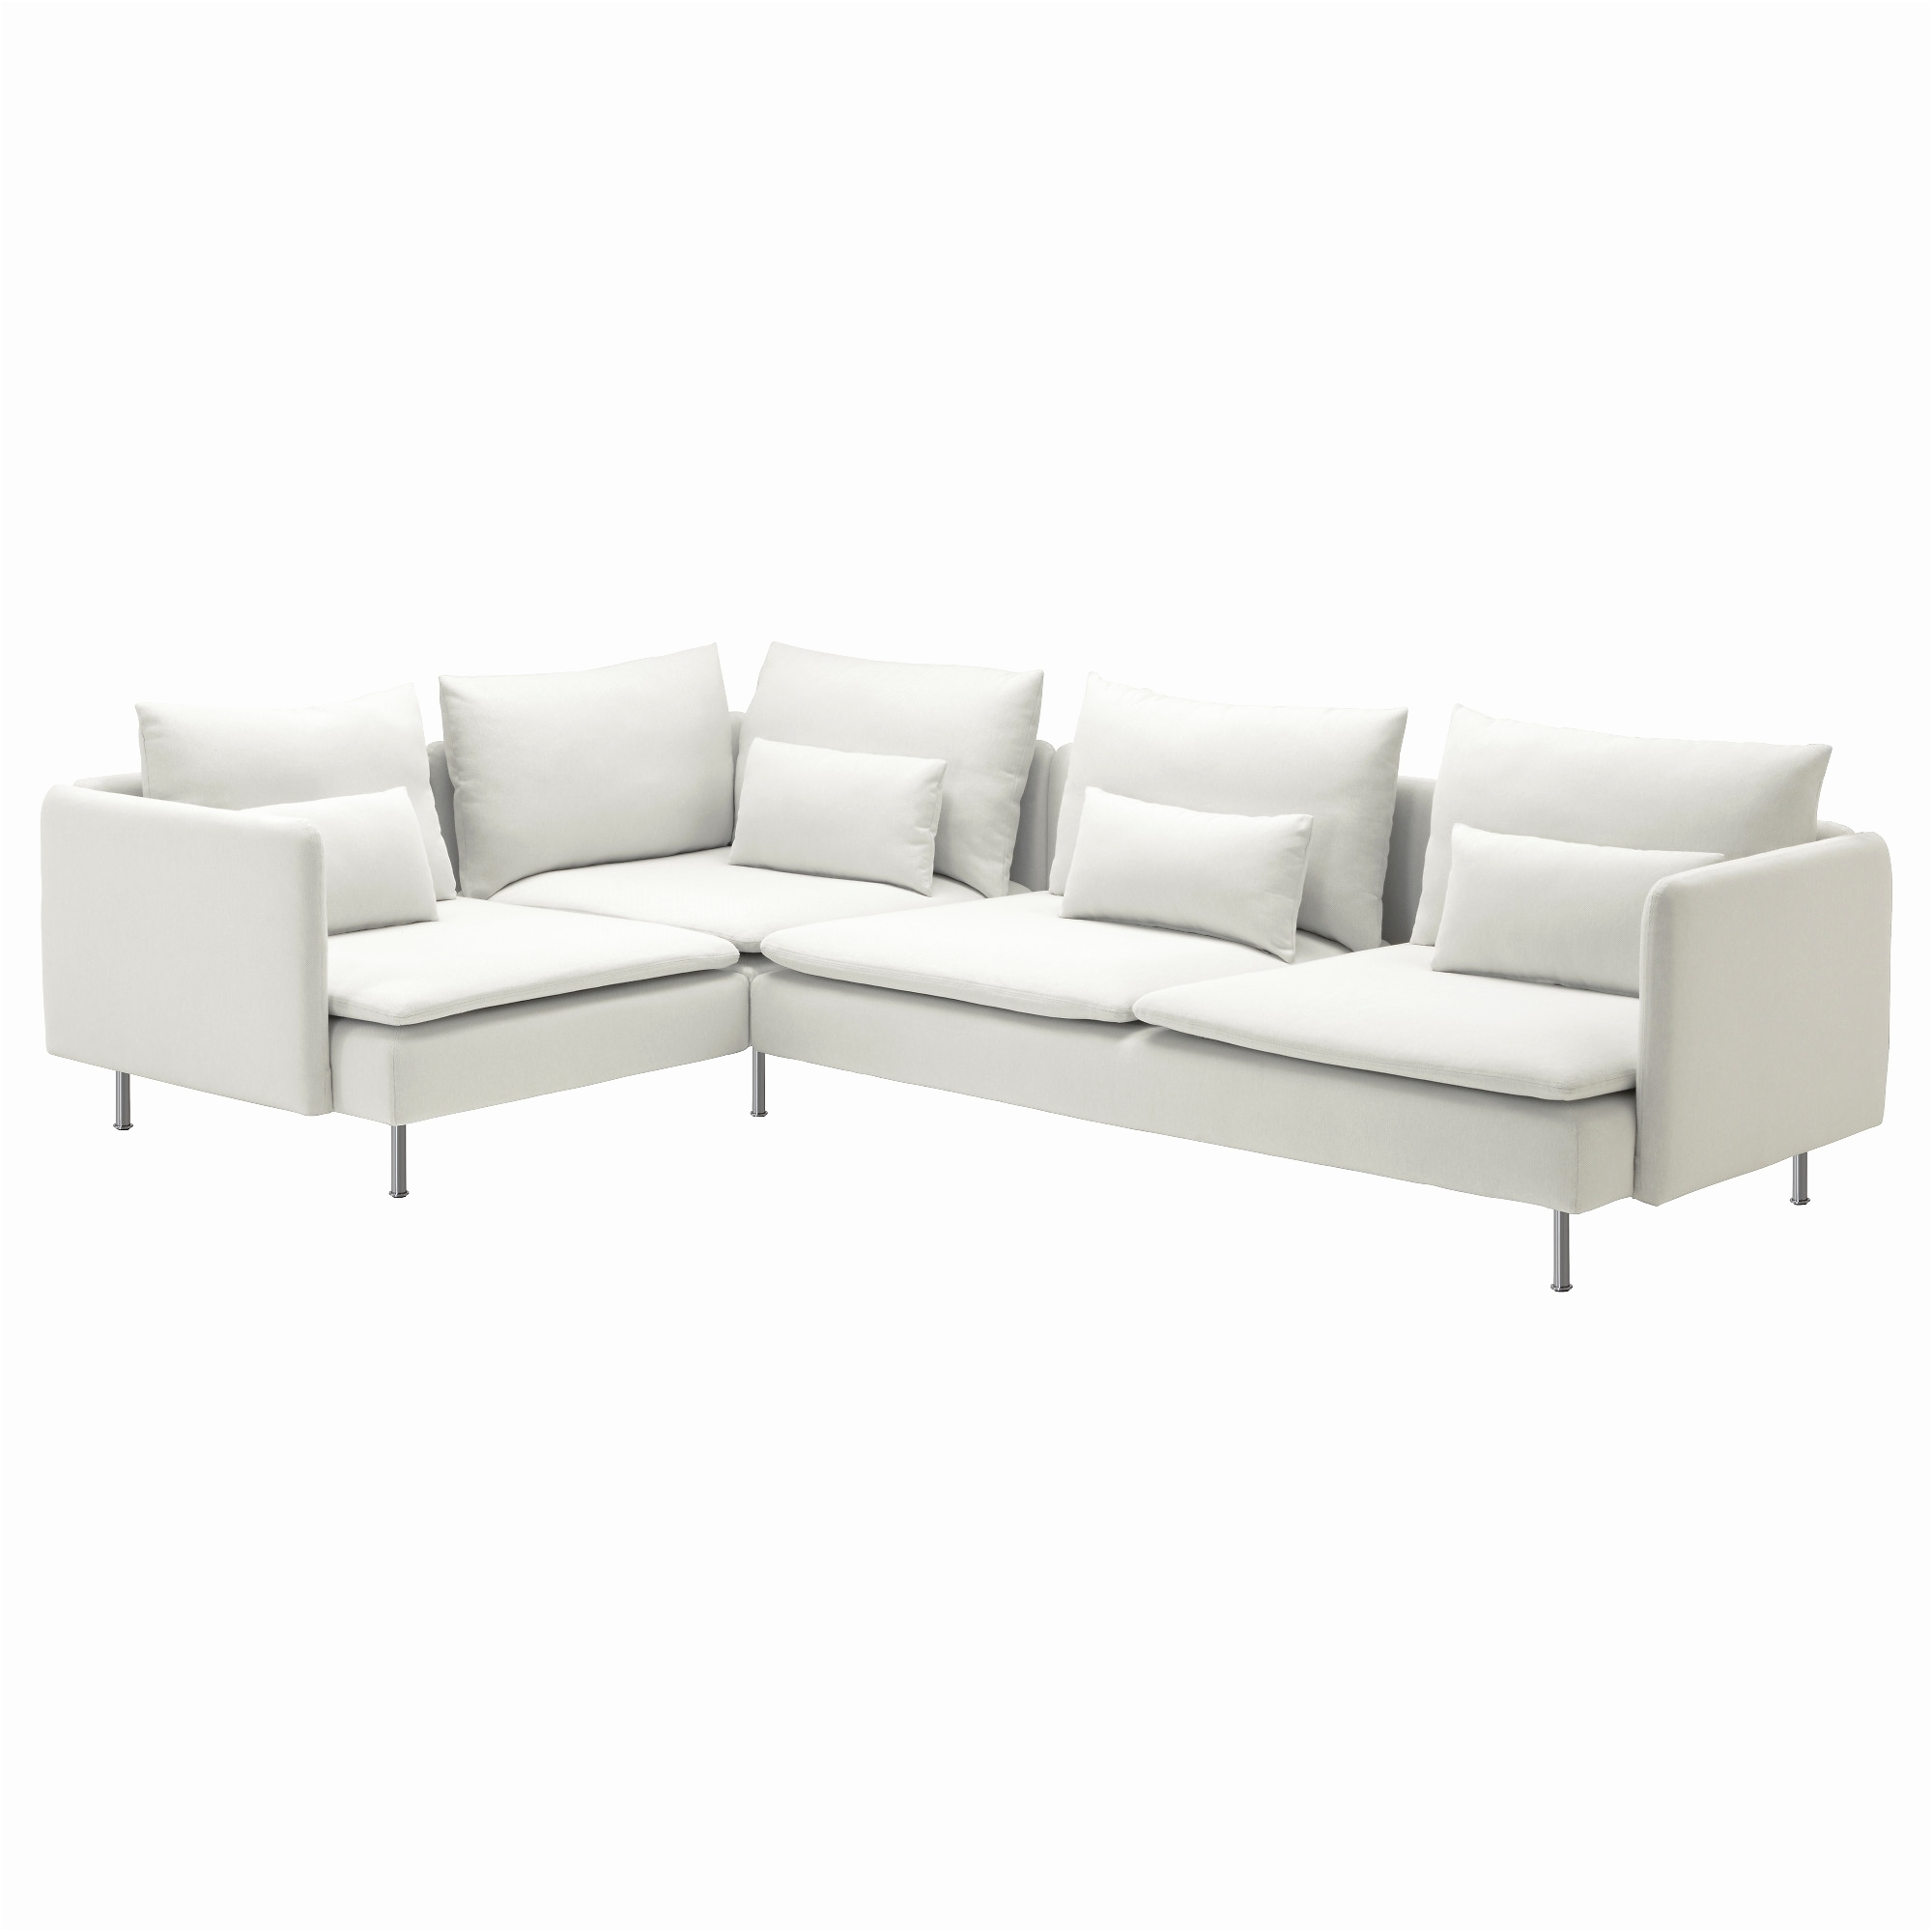 Cheap Sofas Under 200 – Mforum Intended For Well Known Sectional Sofas Under (View 15 of 20)